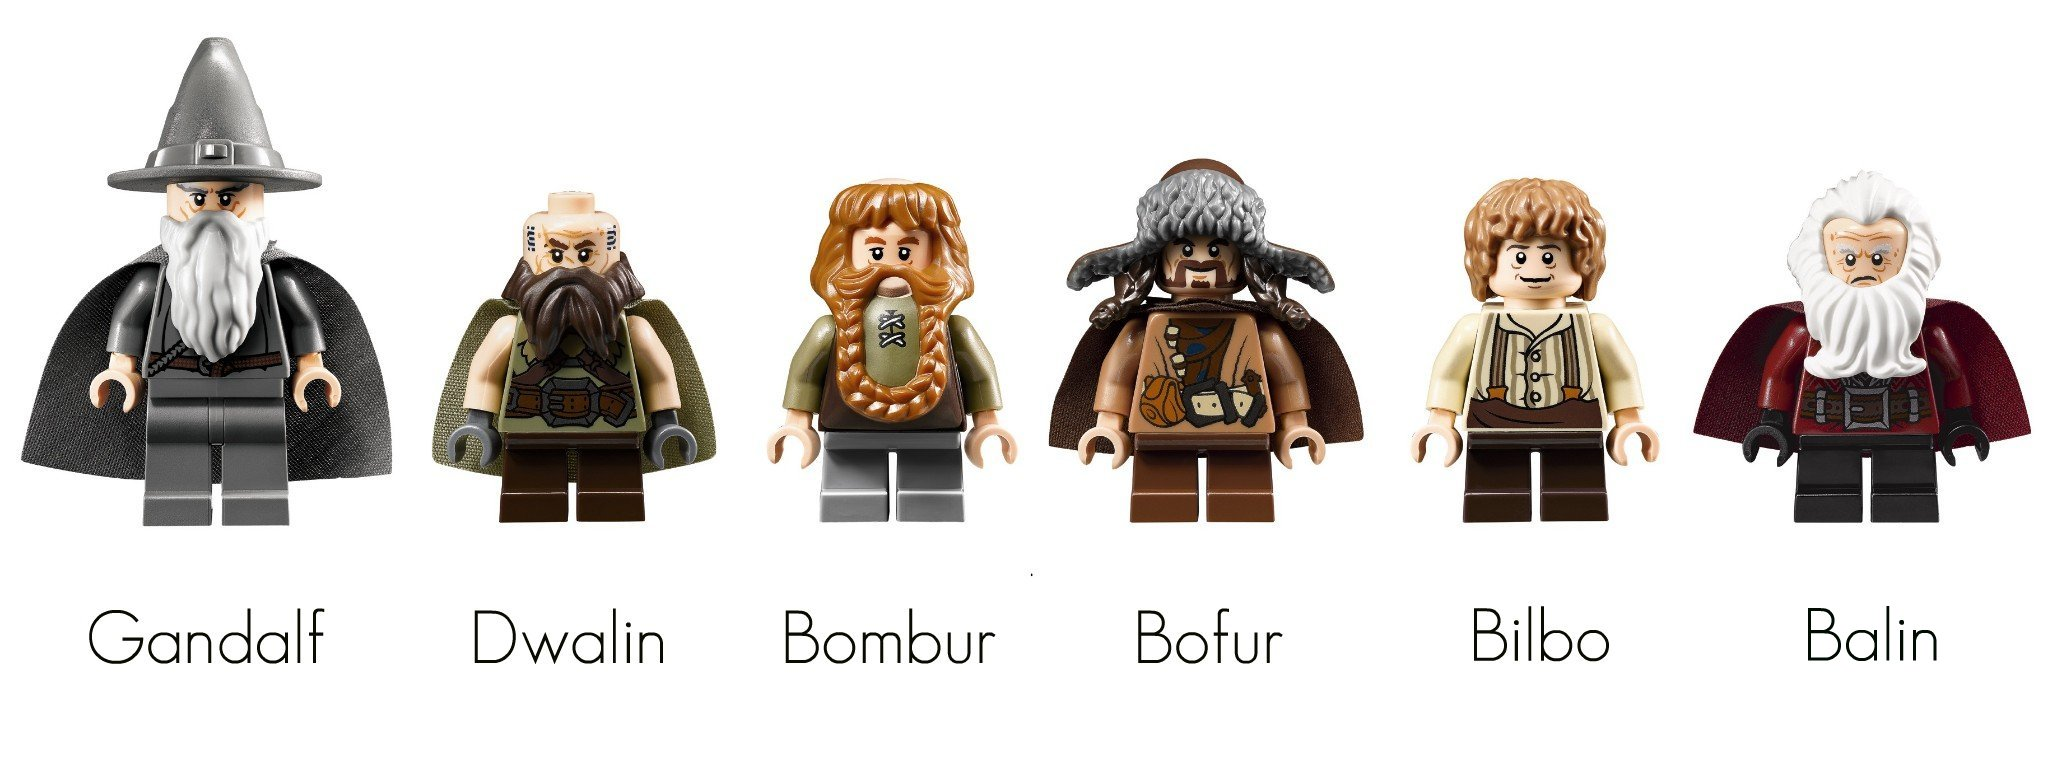 lego-the-hobbit-minifigures1